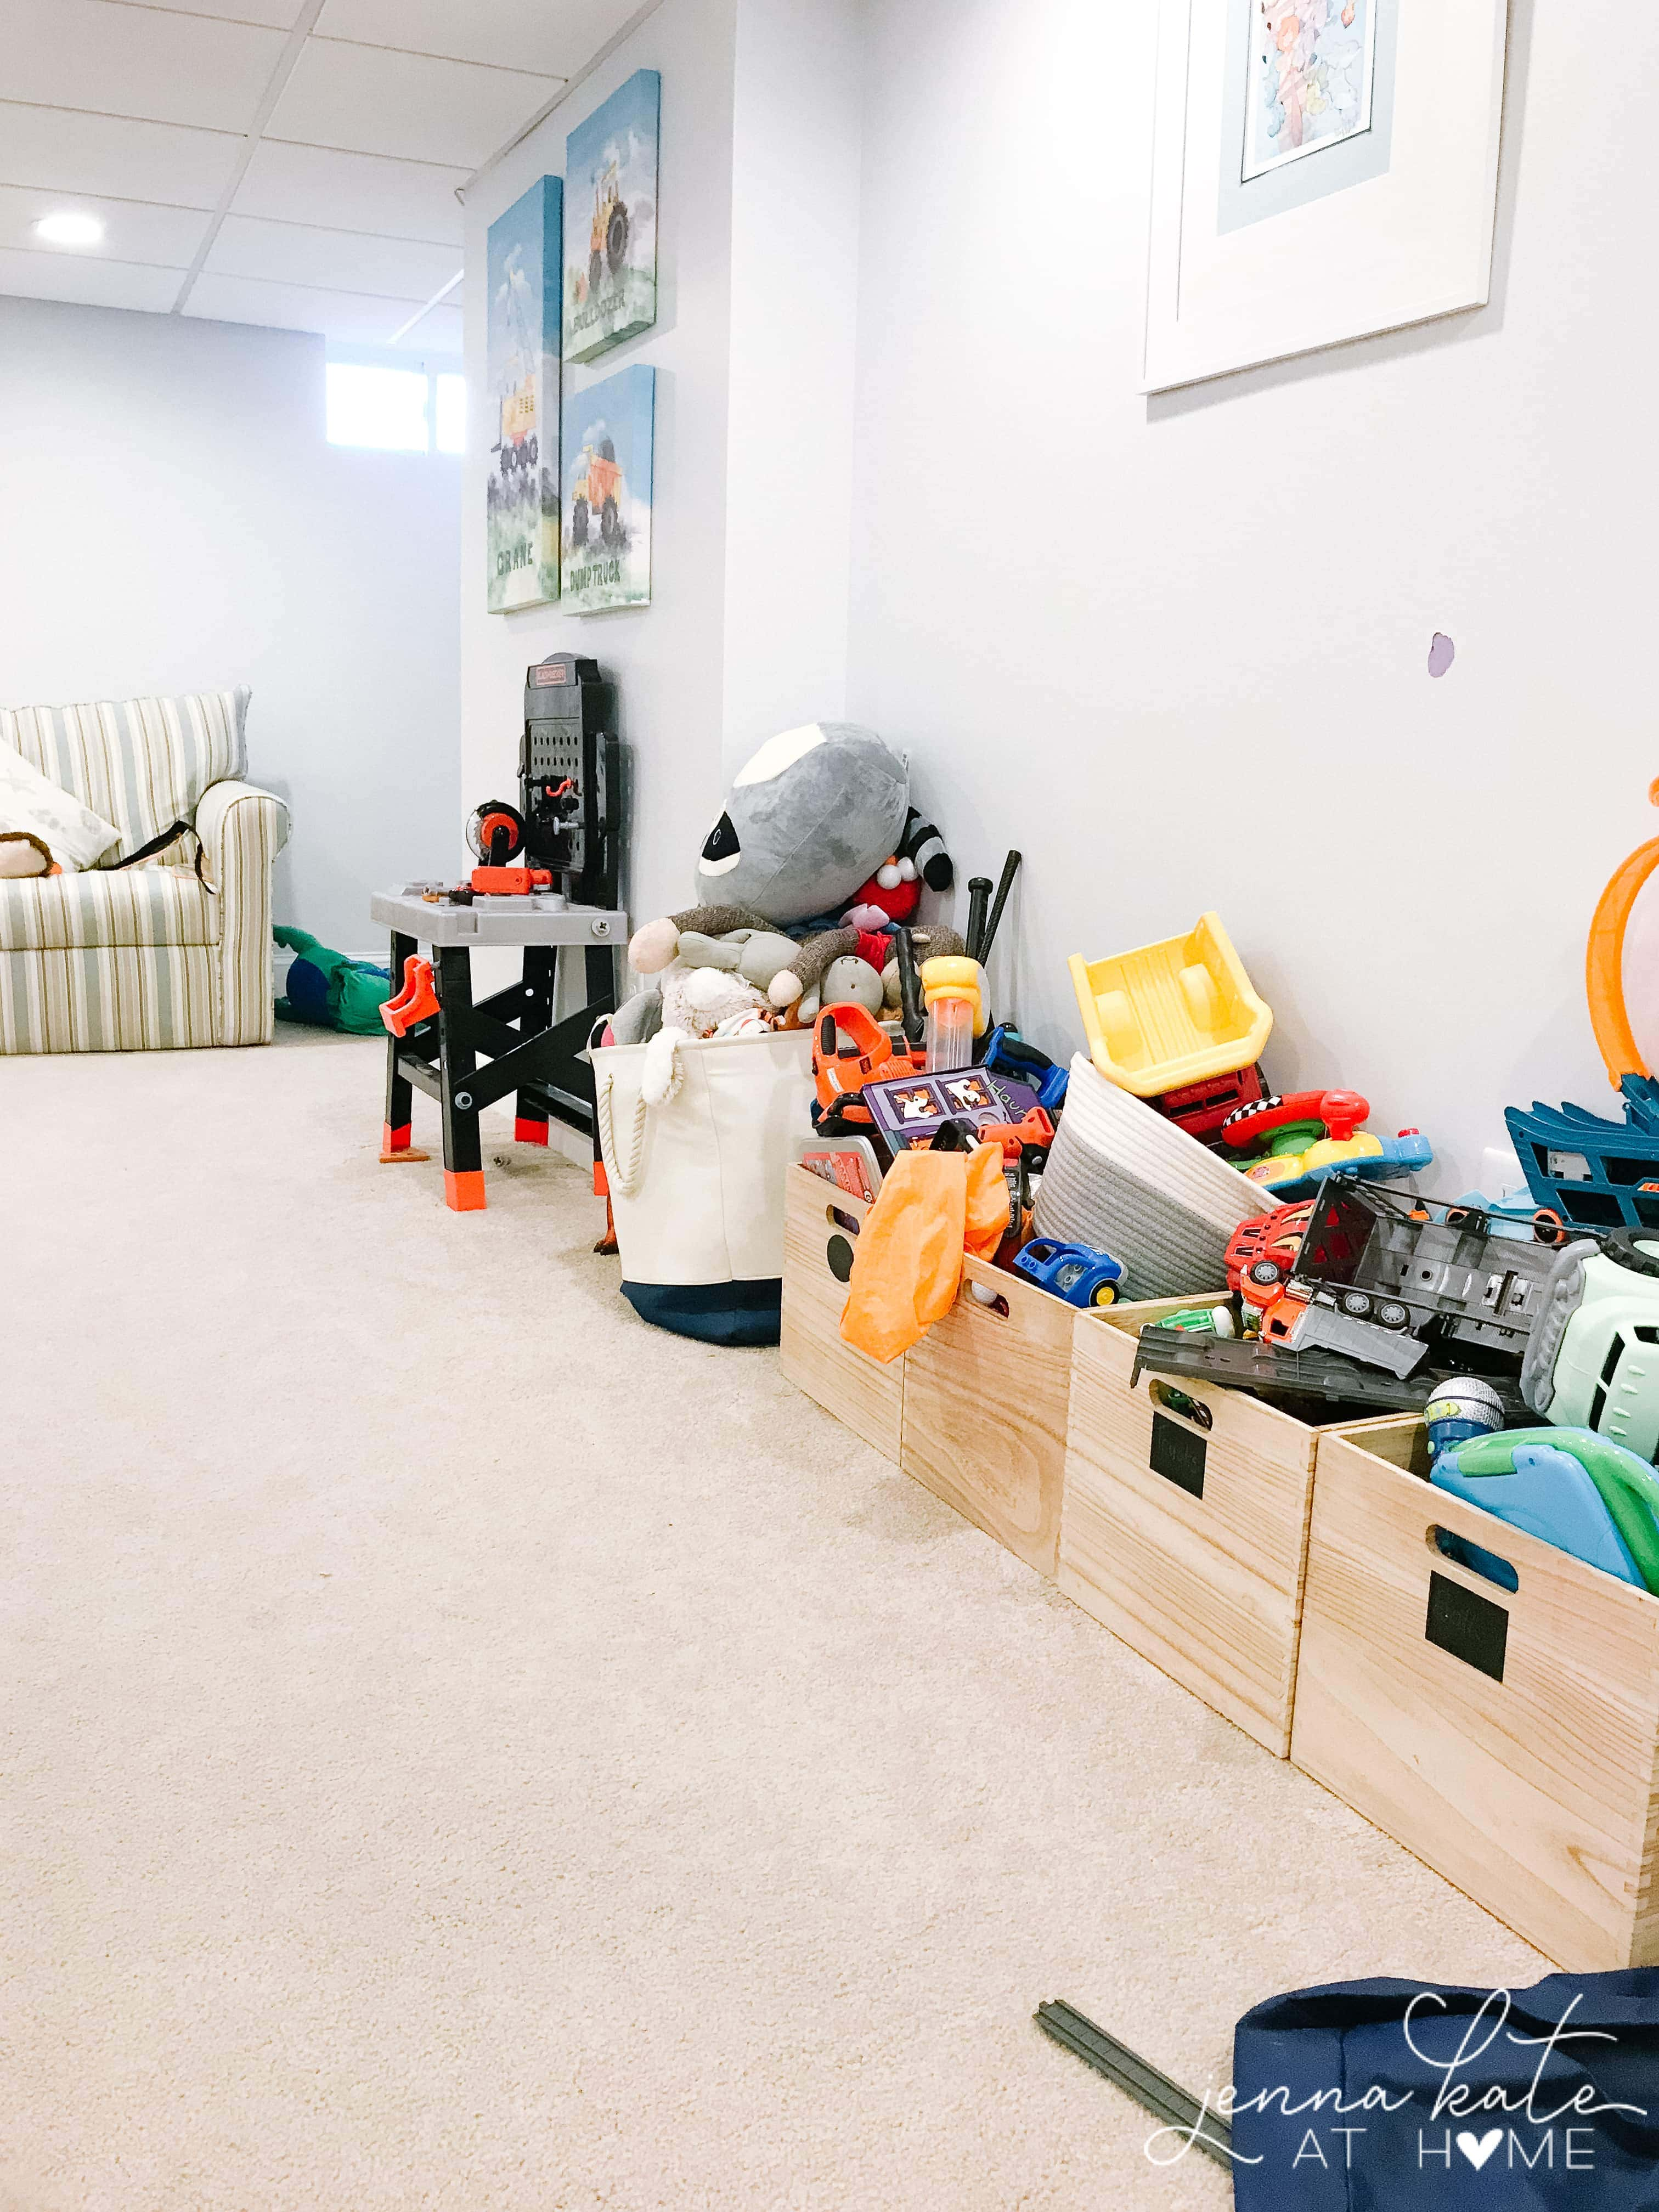 These are the steps to get your playroom organized once and for all